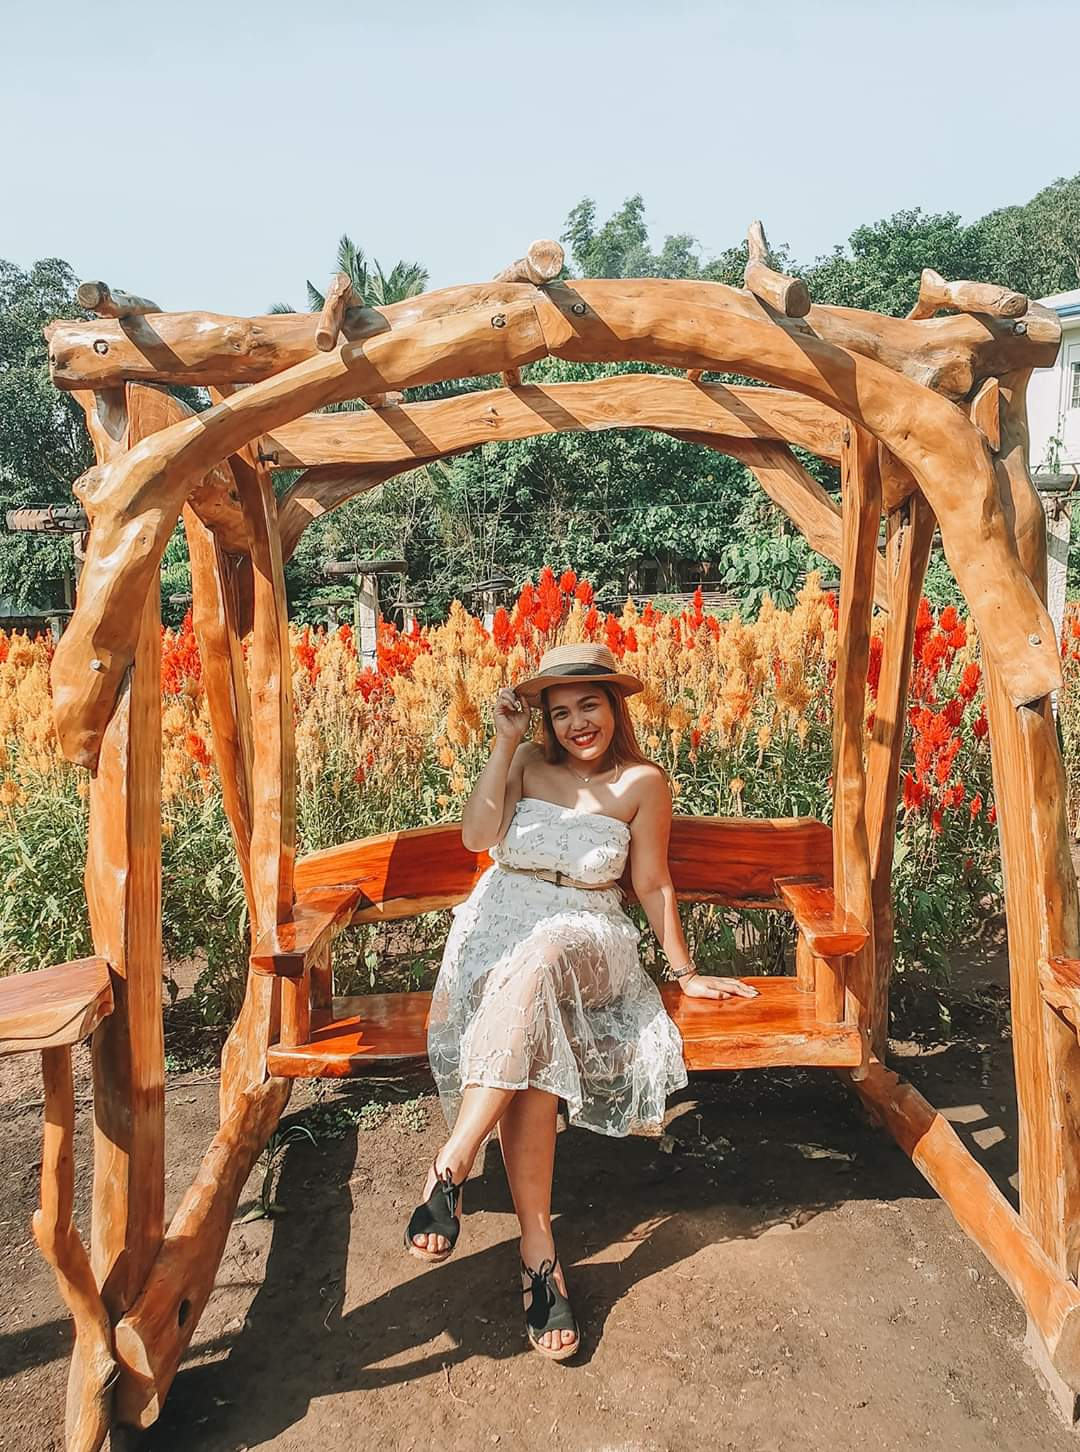 RELAXING. This wooden swing is great for relaxing and taking photos. Photo courtesy of Andrelyn Garan